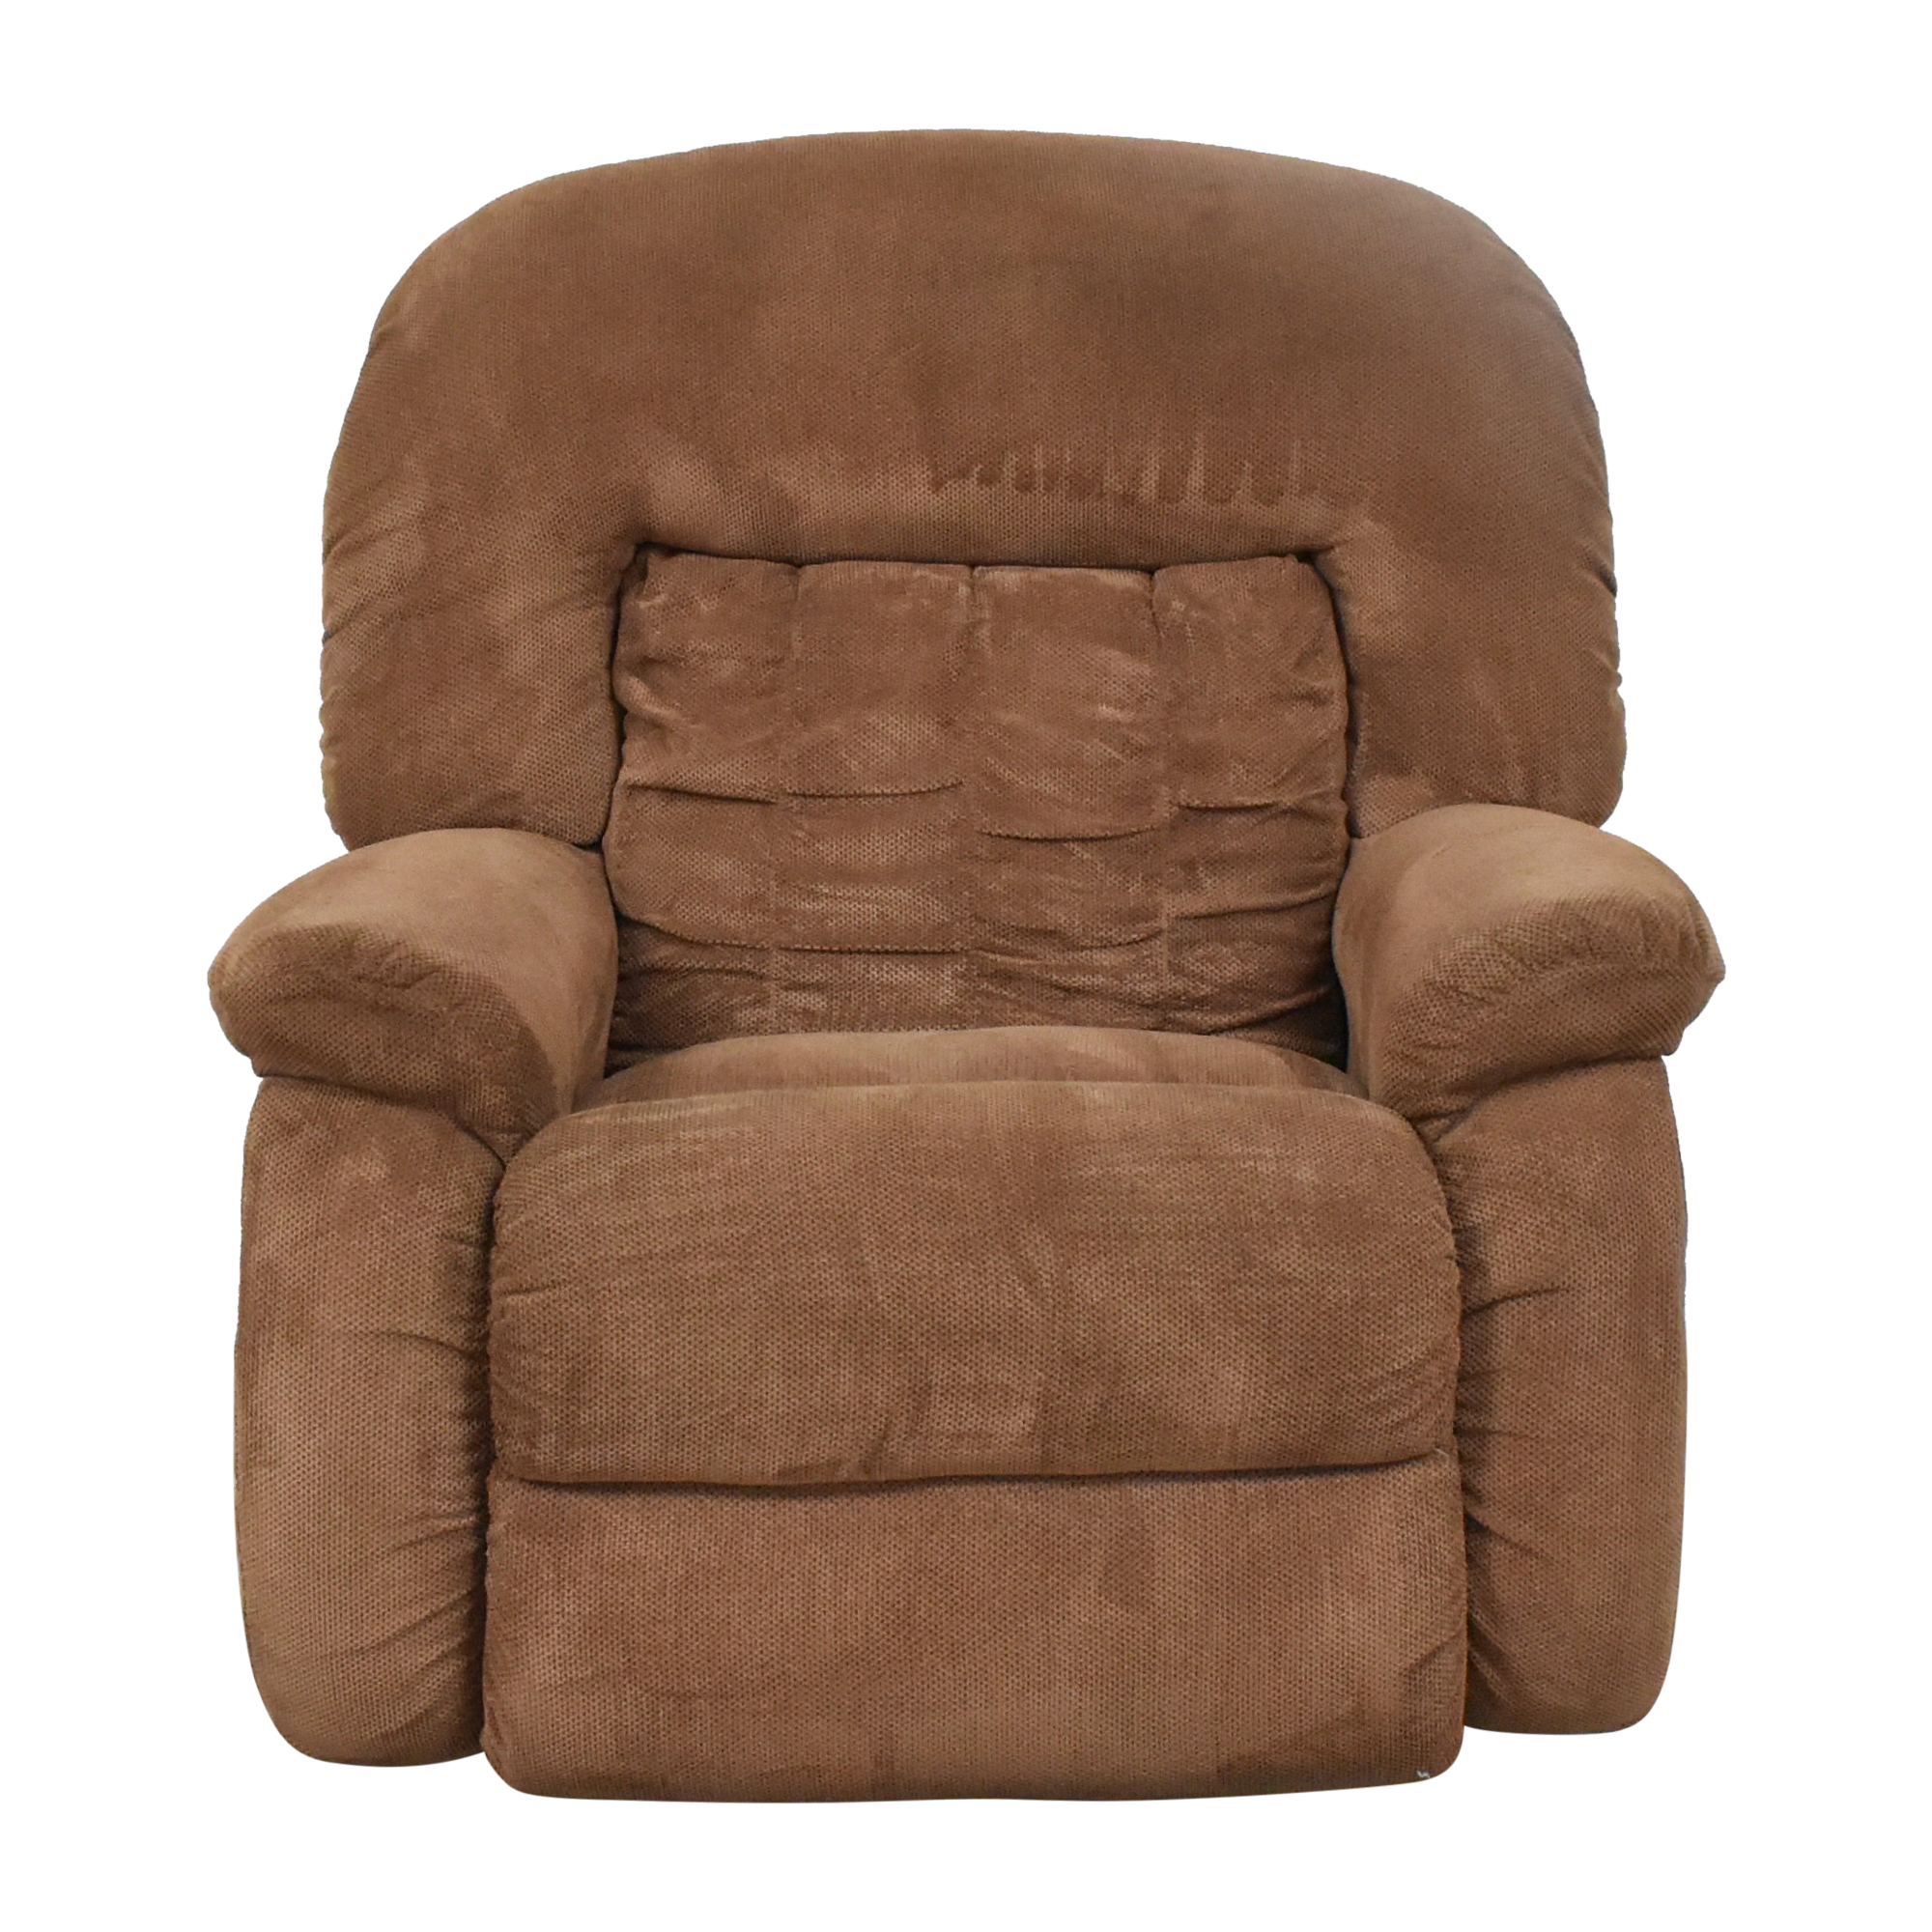 La-Z-Boy Upholstered Recliner / Chairs